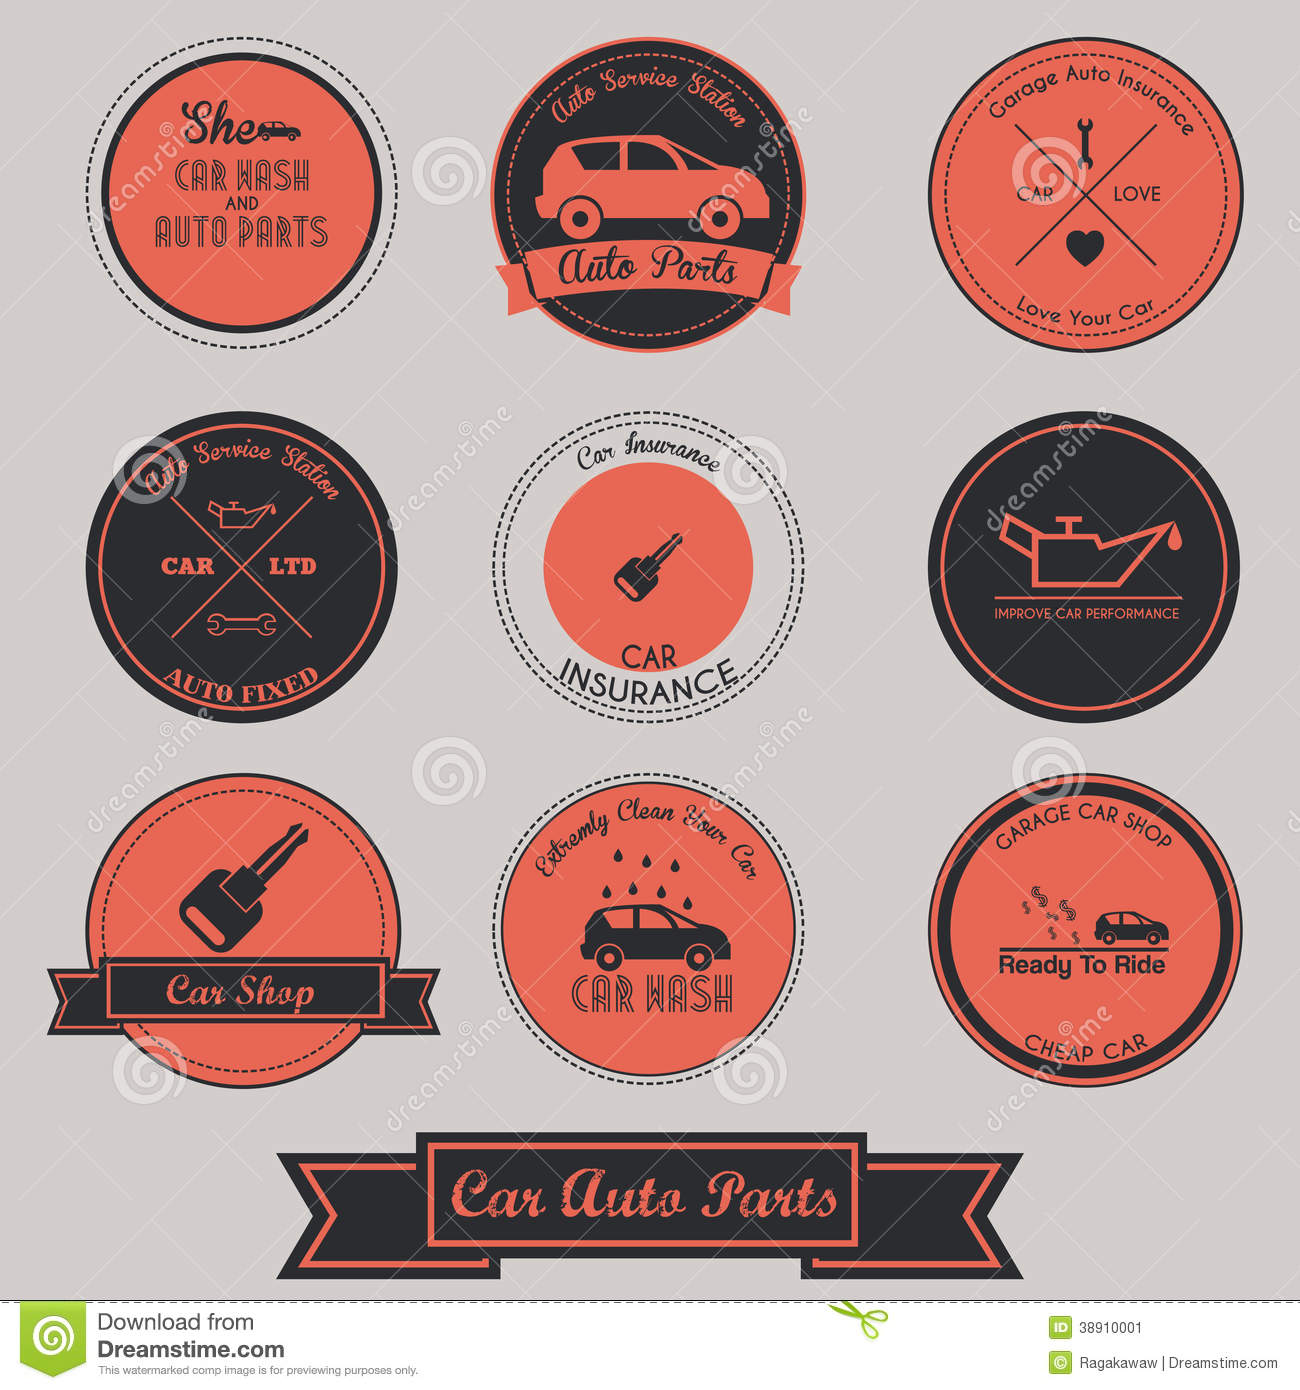 Car Auto Parts Vintage Label Design Stock Vector